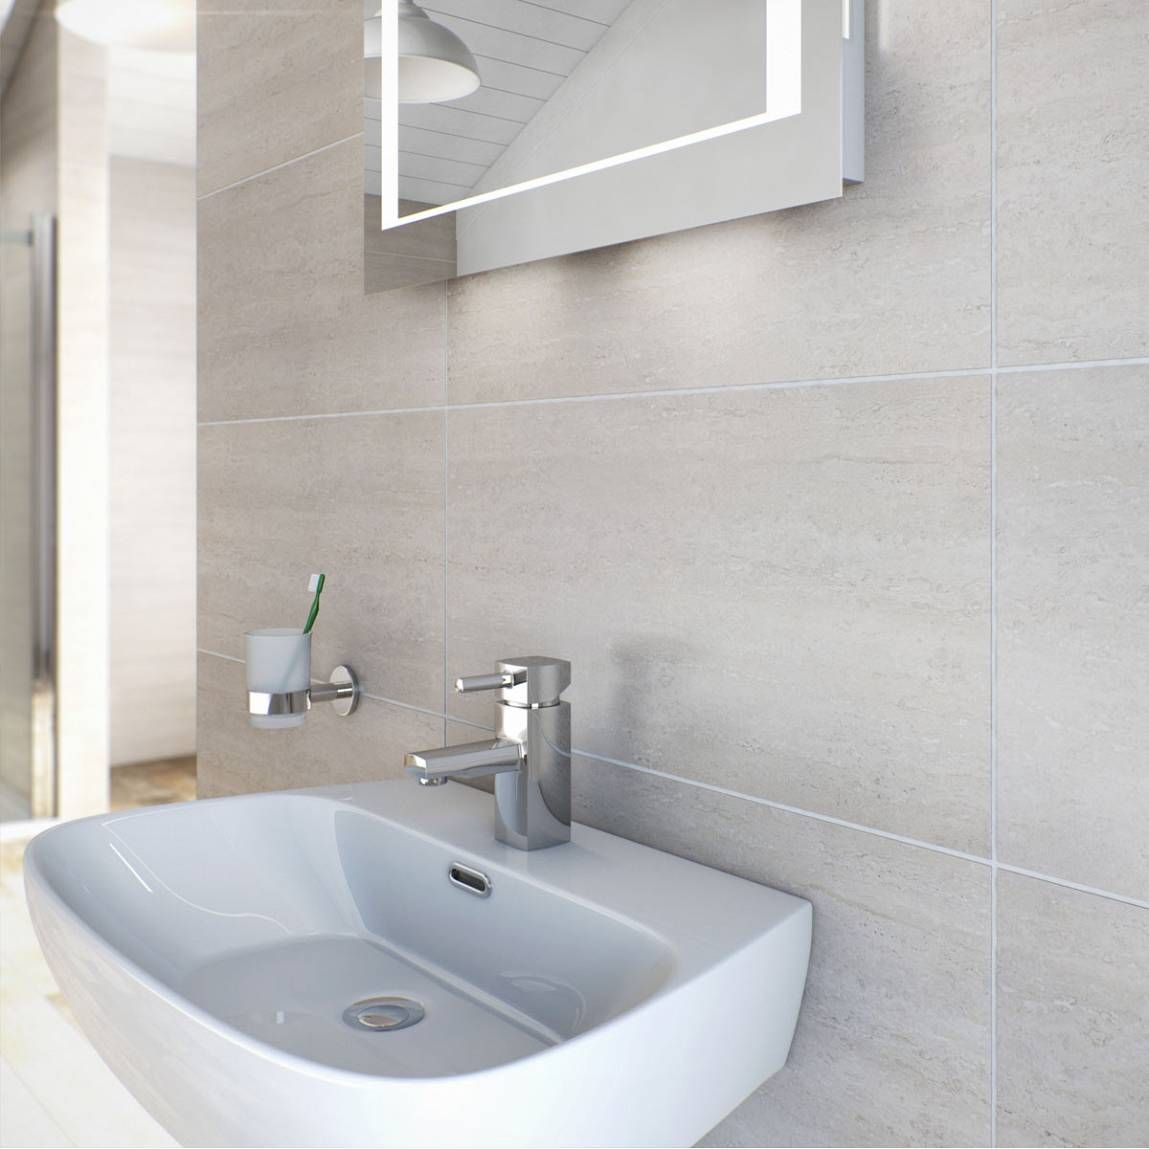 Natalia bone glazed porcelain floor & wall tile 30cm x 60cm | Wall ...